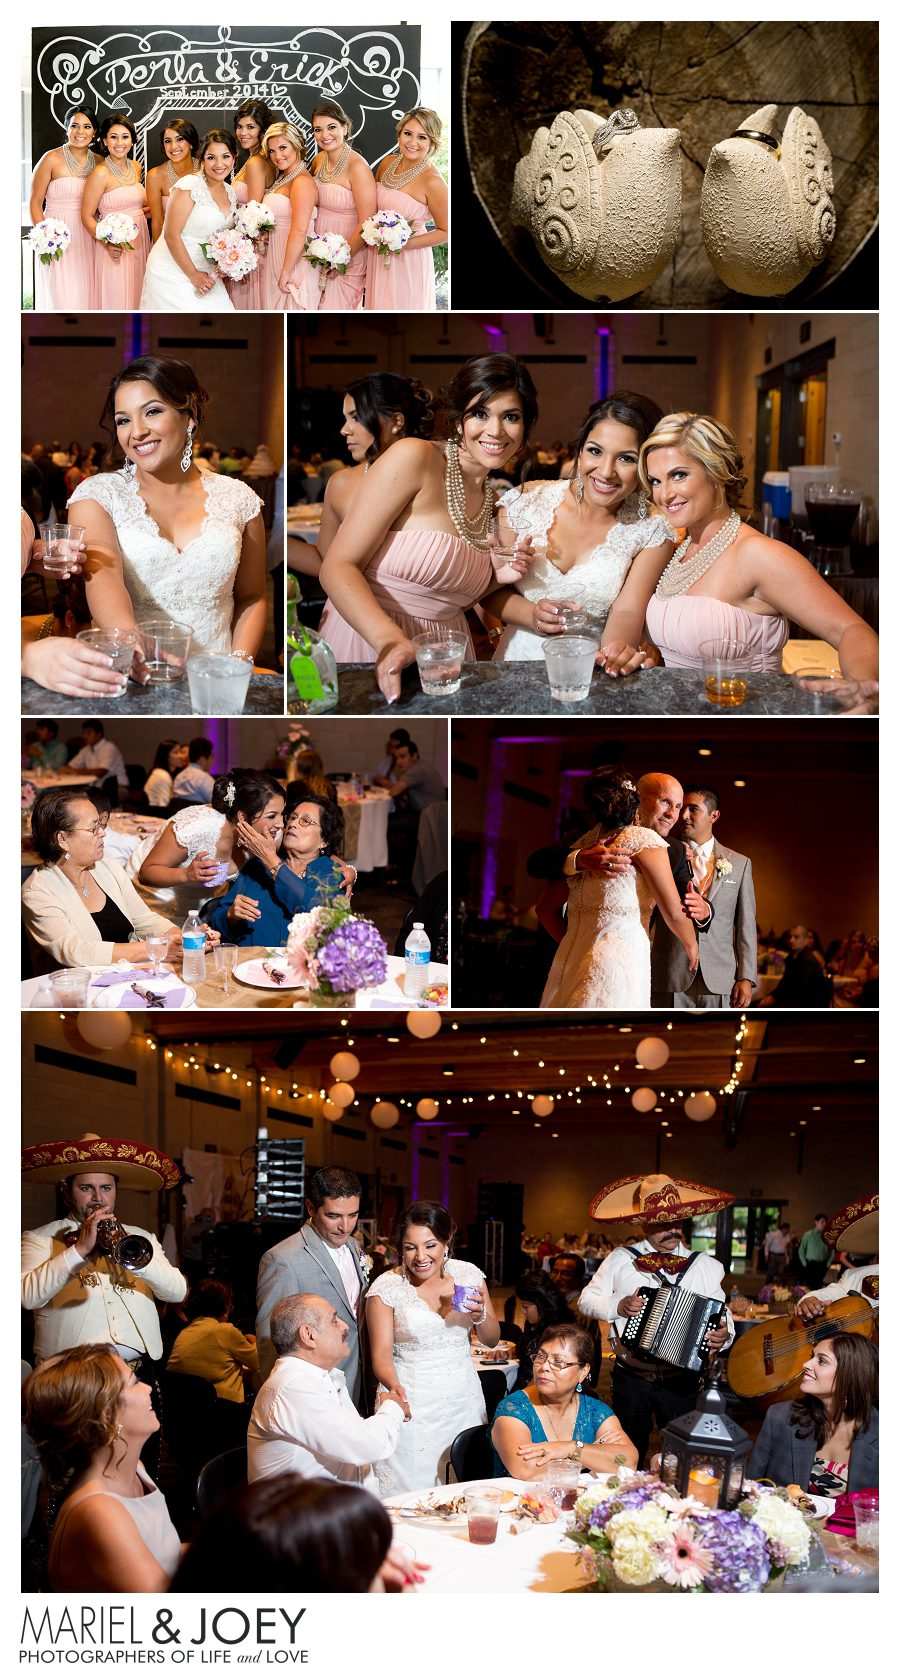 wedding reception at addison event center perla and erick 5